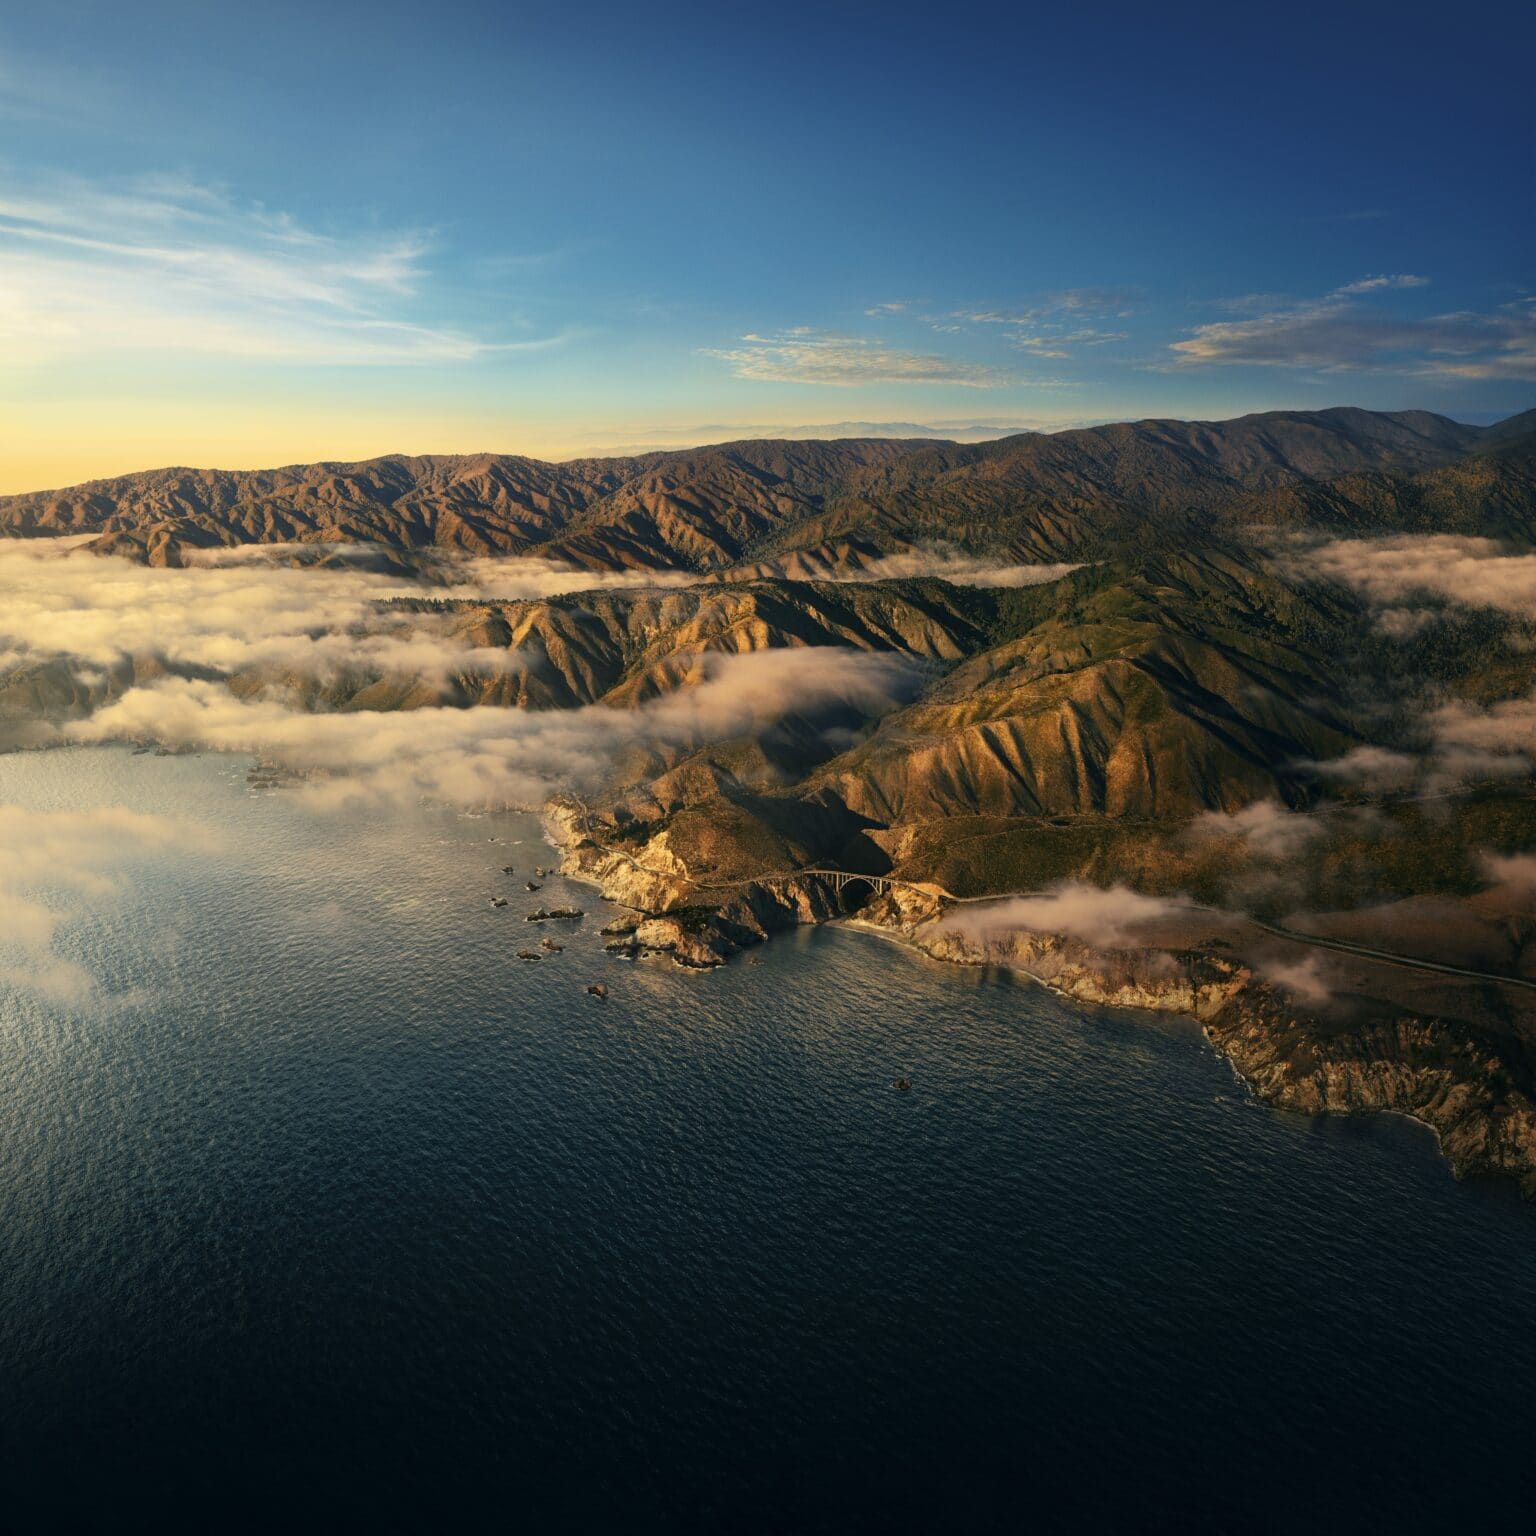 MacOS 11 Big Sur Wallpaper